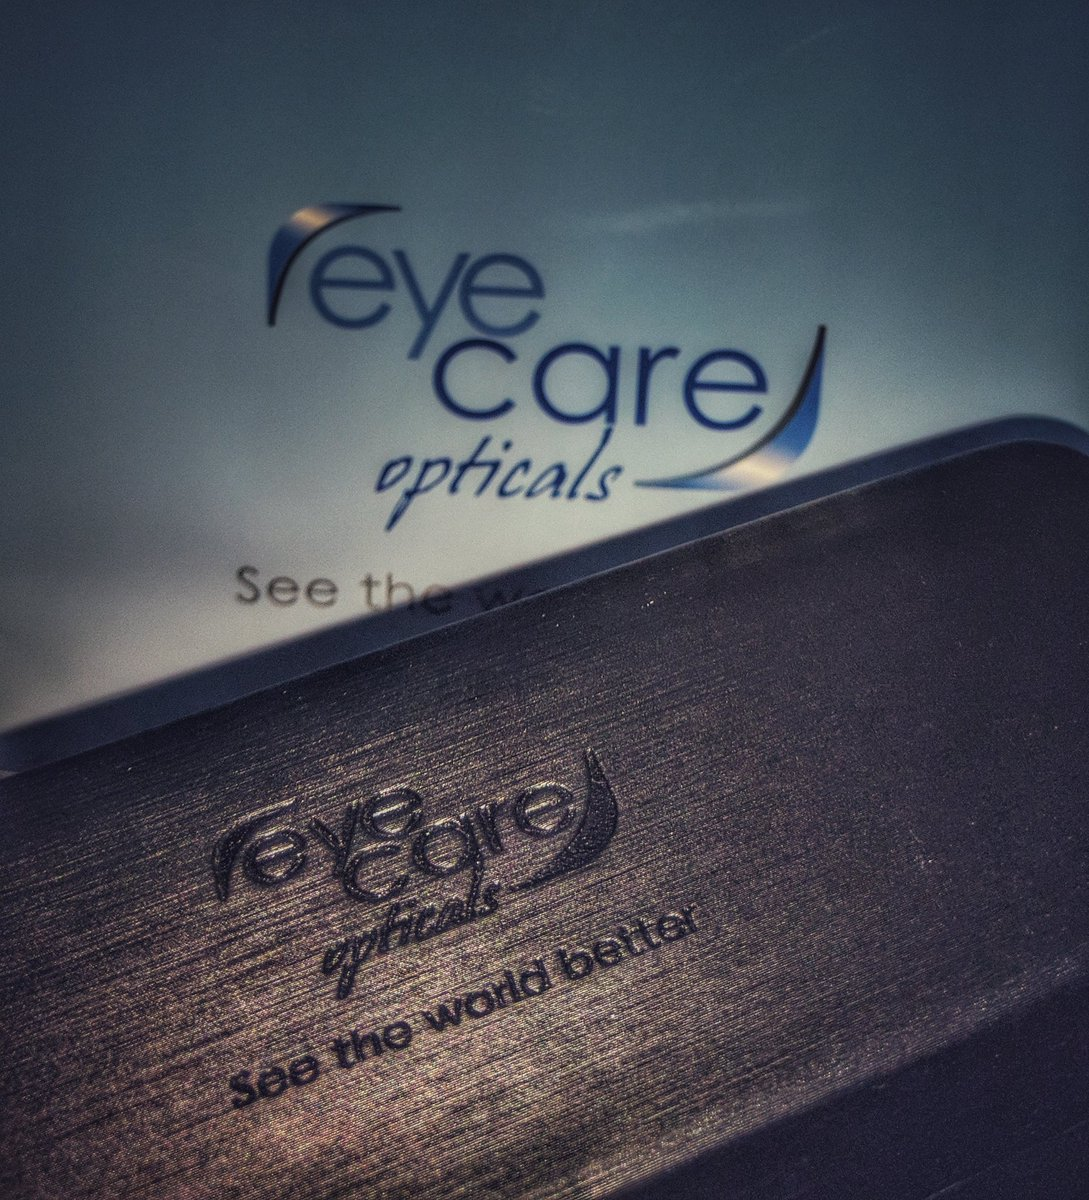 Thanks to Eye Care Opticals I&#39;m seeing the world better now. #Eyecare <br>http://pic.twitter.com/2NaI7xjknd